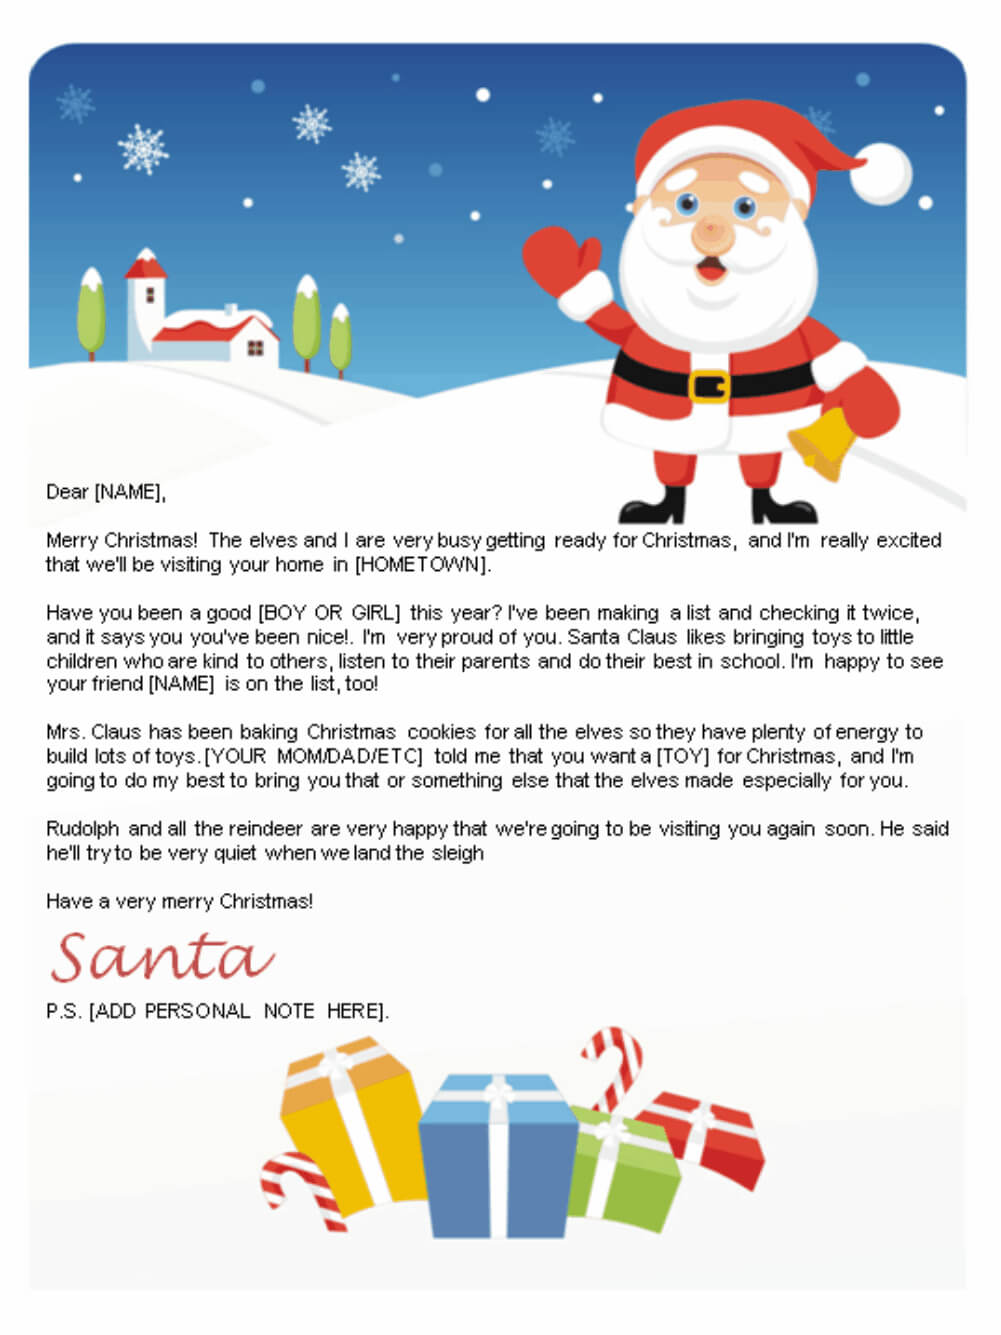 Free Letters From Santa | Santa Letters To Print At Home Throughout Santa Letter Template Word